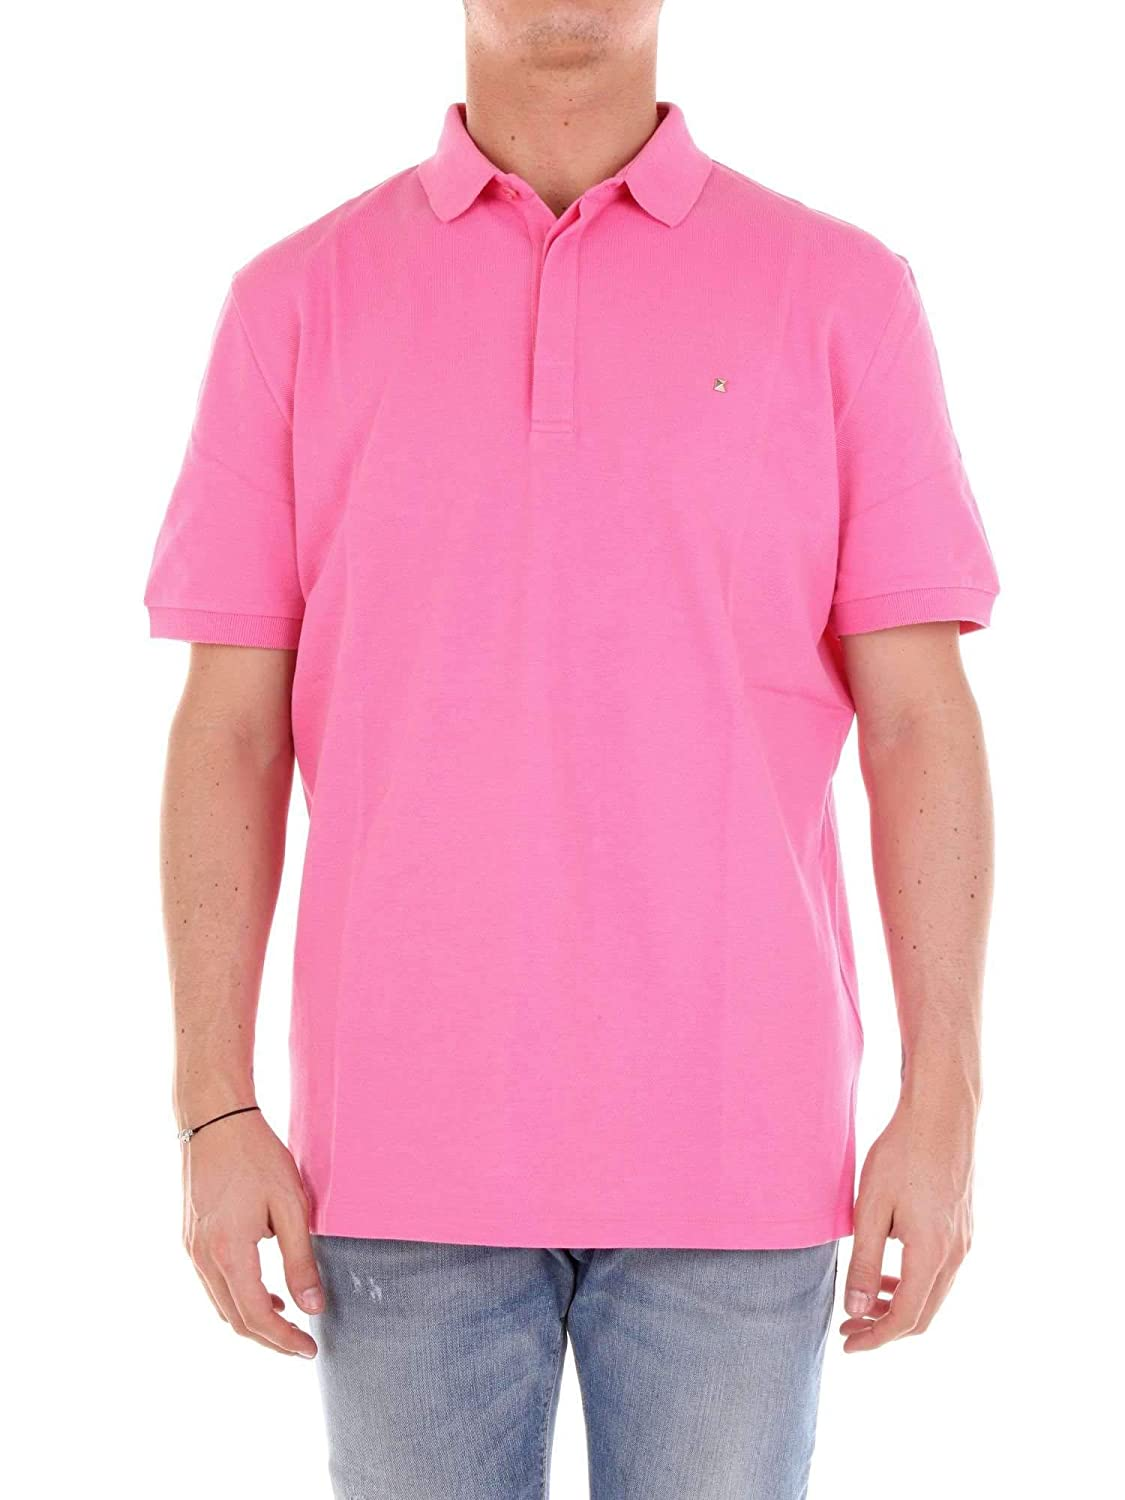 Valentino Luxury Fashion Hombre PV3MH00V3MNPINK Rosa Polo ...